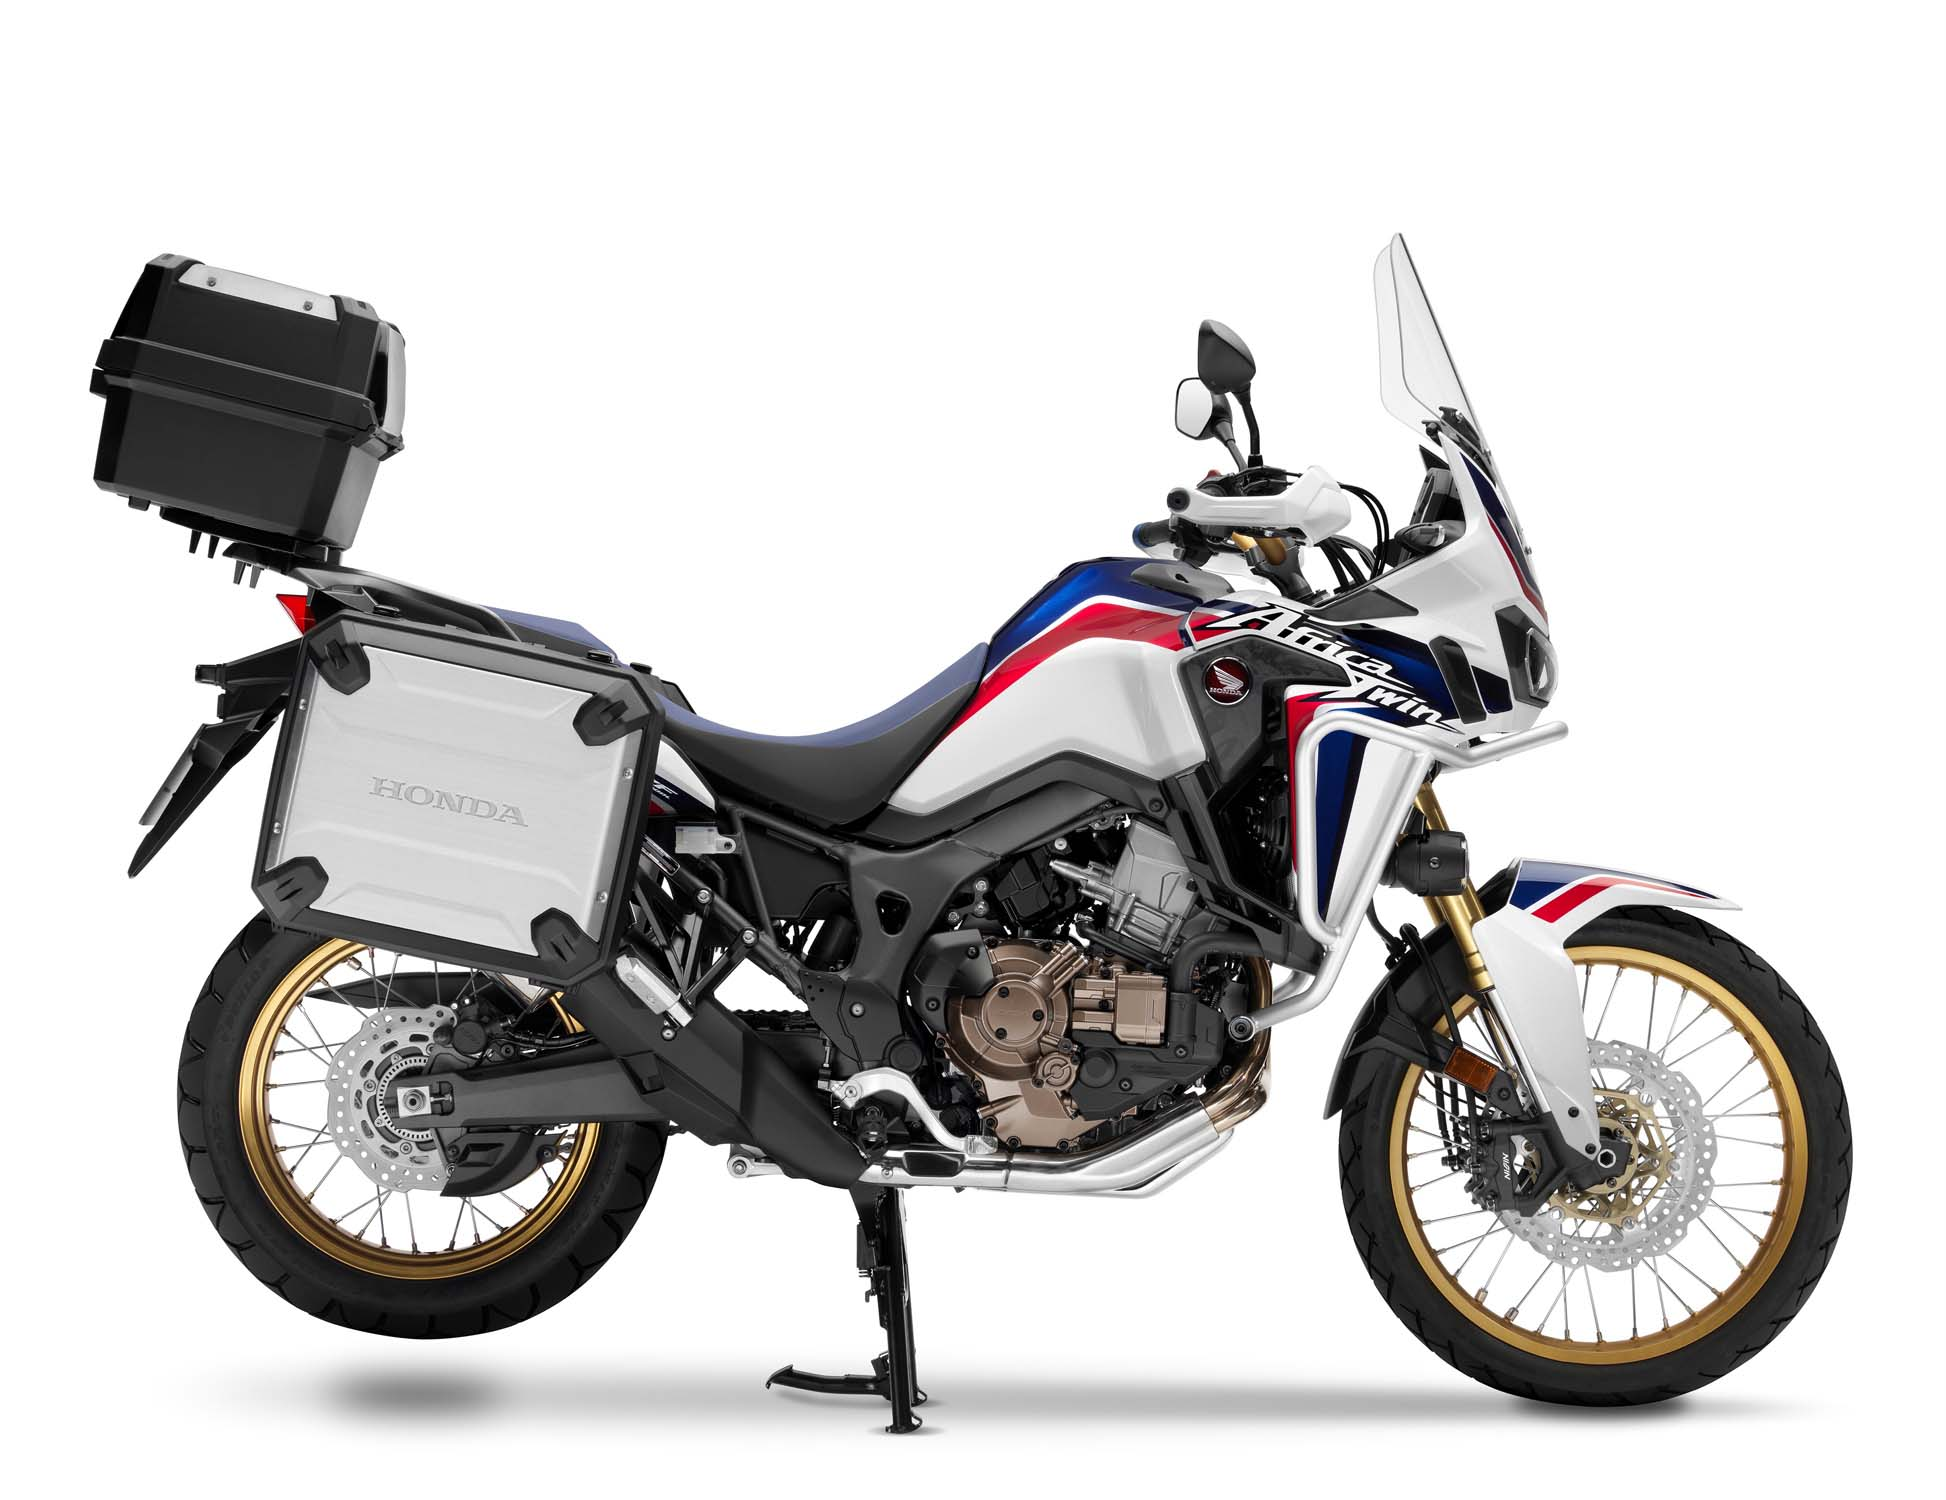 gebrauchte honda crf1000l africa twin motorr der kaufen. Black Bedroom Furniture Sets. Home Design Ideas